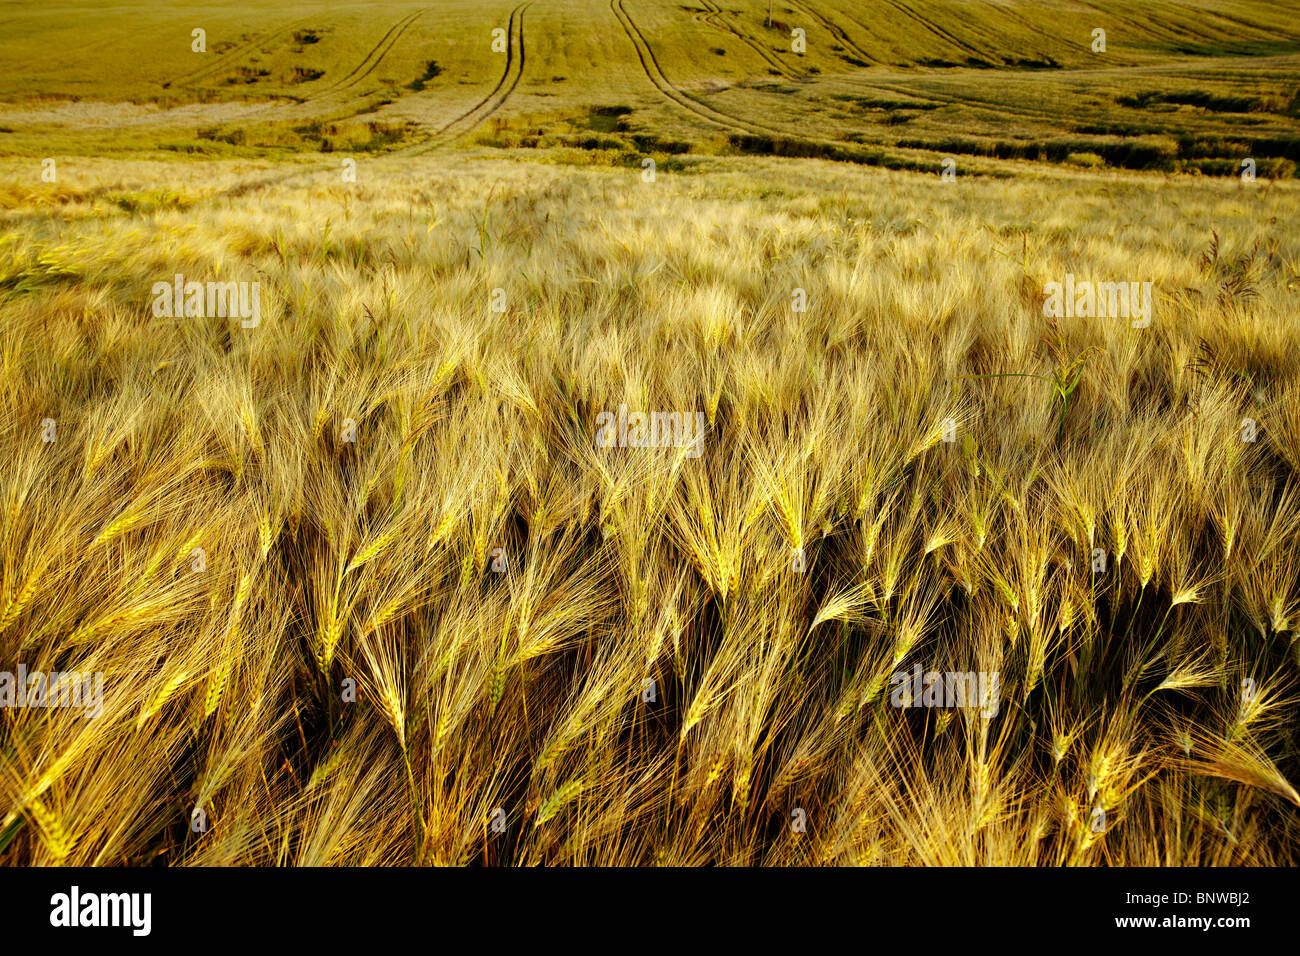 Corn field in the middle of summer - Stock Image